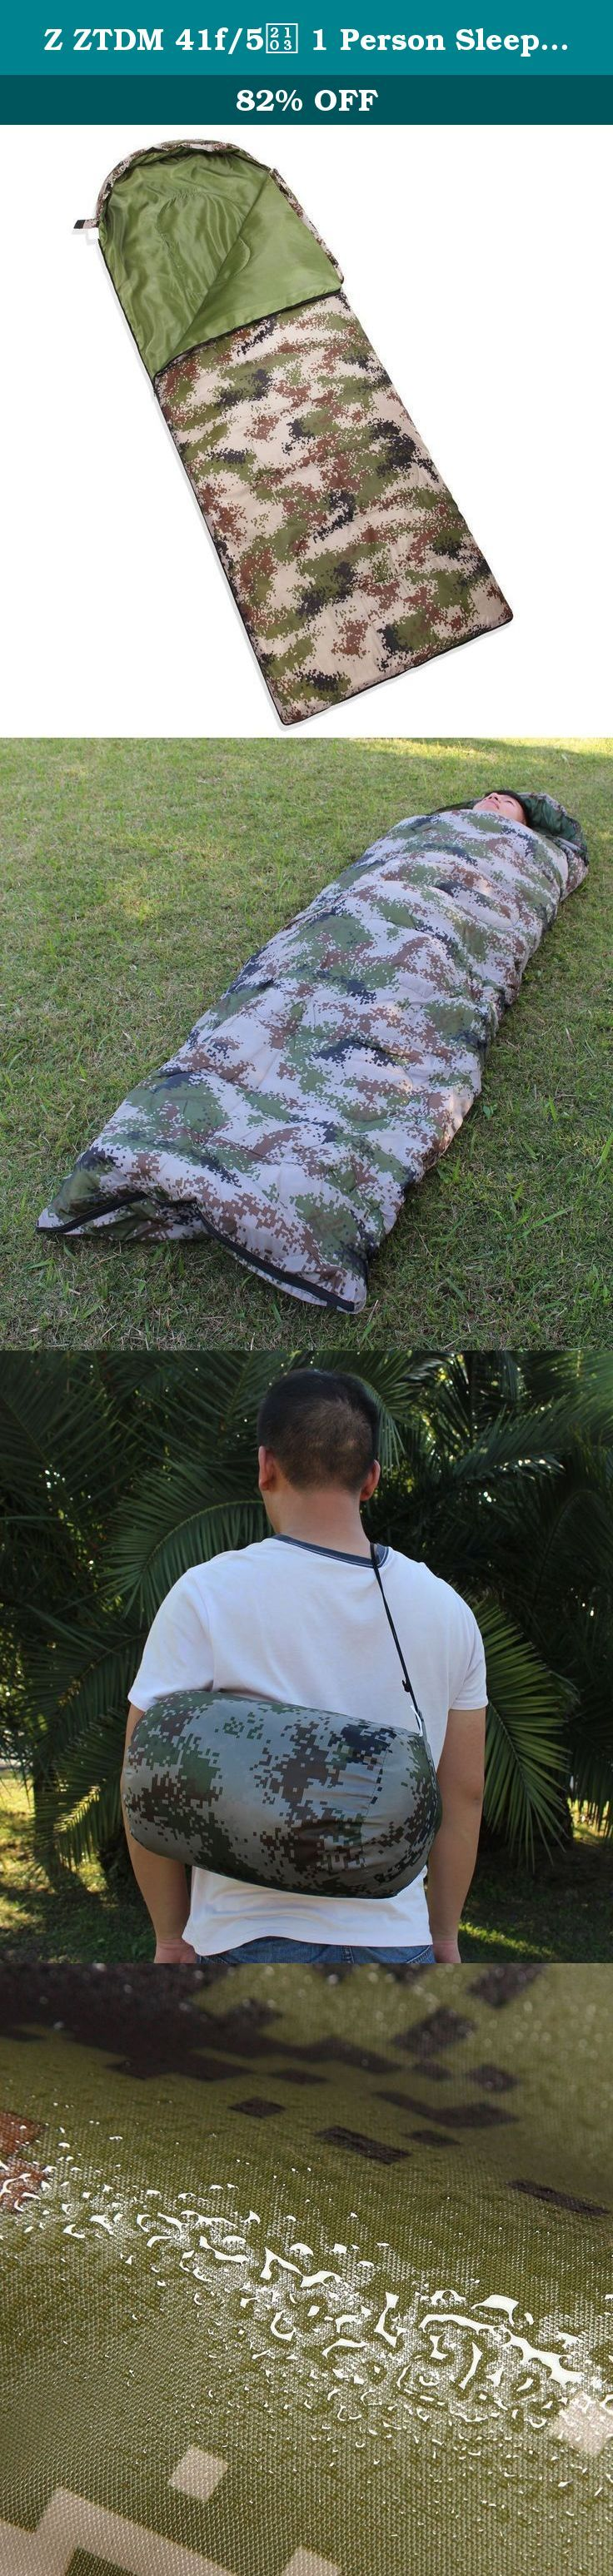 Z ZTDM 41f/5℃ 1 Person Sleeping Bag with a Carrying Bag for Camping, Backpacking, Hiking, Travel 82 x 27 inch Camo Lightweight Sleeping Bag. Item Specifications: 1. In the wild to prevent moisture or cold air to enter, and convenient to scrub 2. Full length zipper, easy to detach 3. Latest technology makes sure the sleeping bag is packed with features to keep you warm and comfortable 4. The sleeping bag can be unzipped and opened flat for use as a blanket 5. You can simply roll up the...